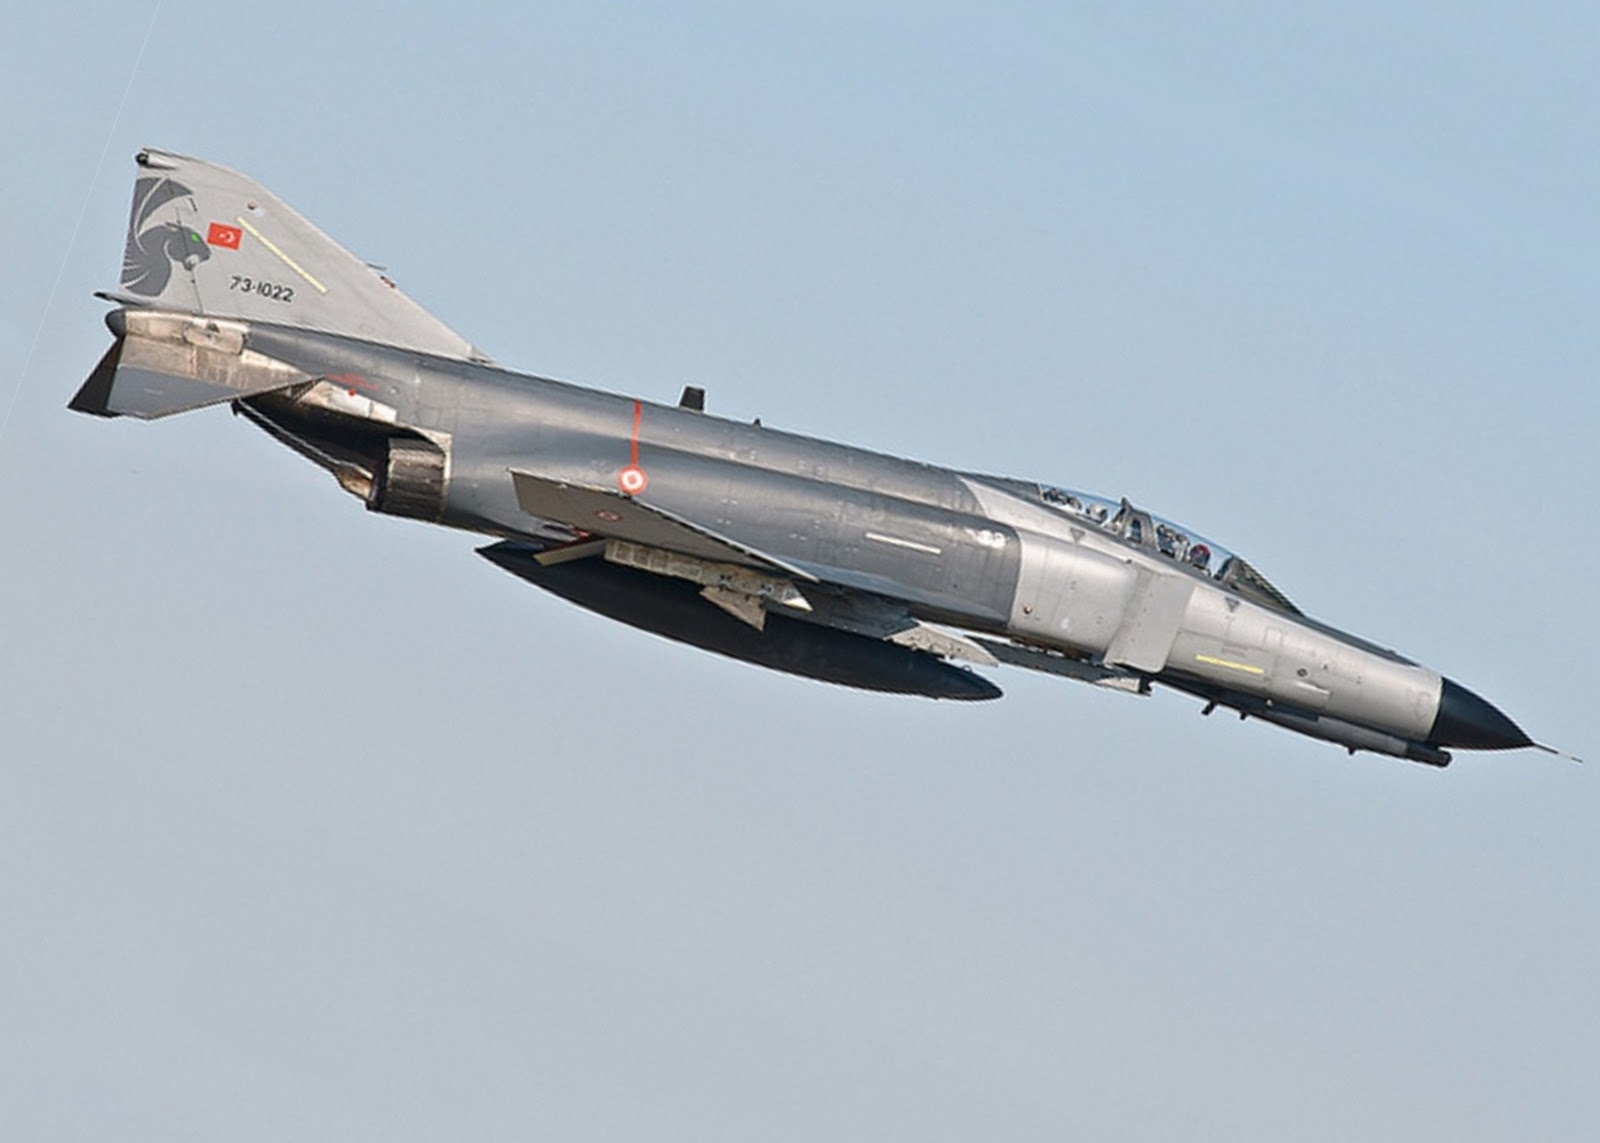 Turkish F-4 Phantom II Fighter Jet Crashes, killing 2 | Global Military Review Air Force Fighter Jets